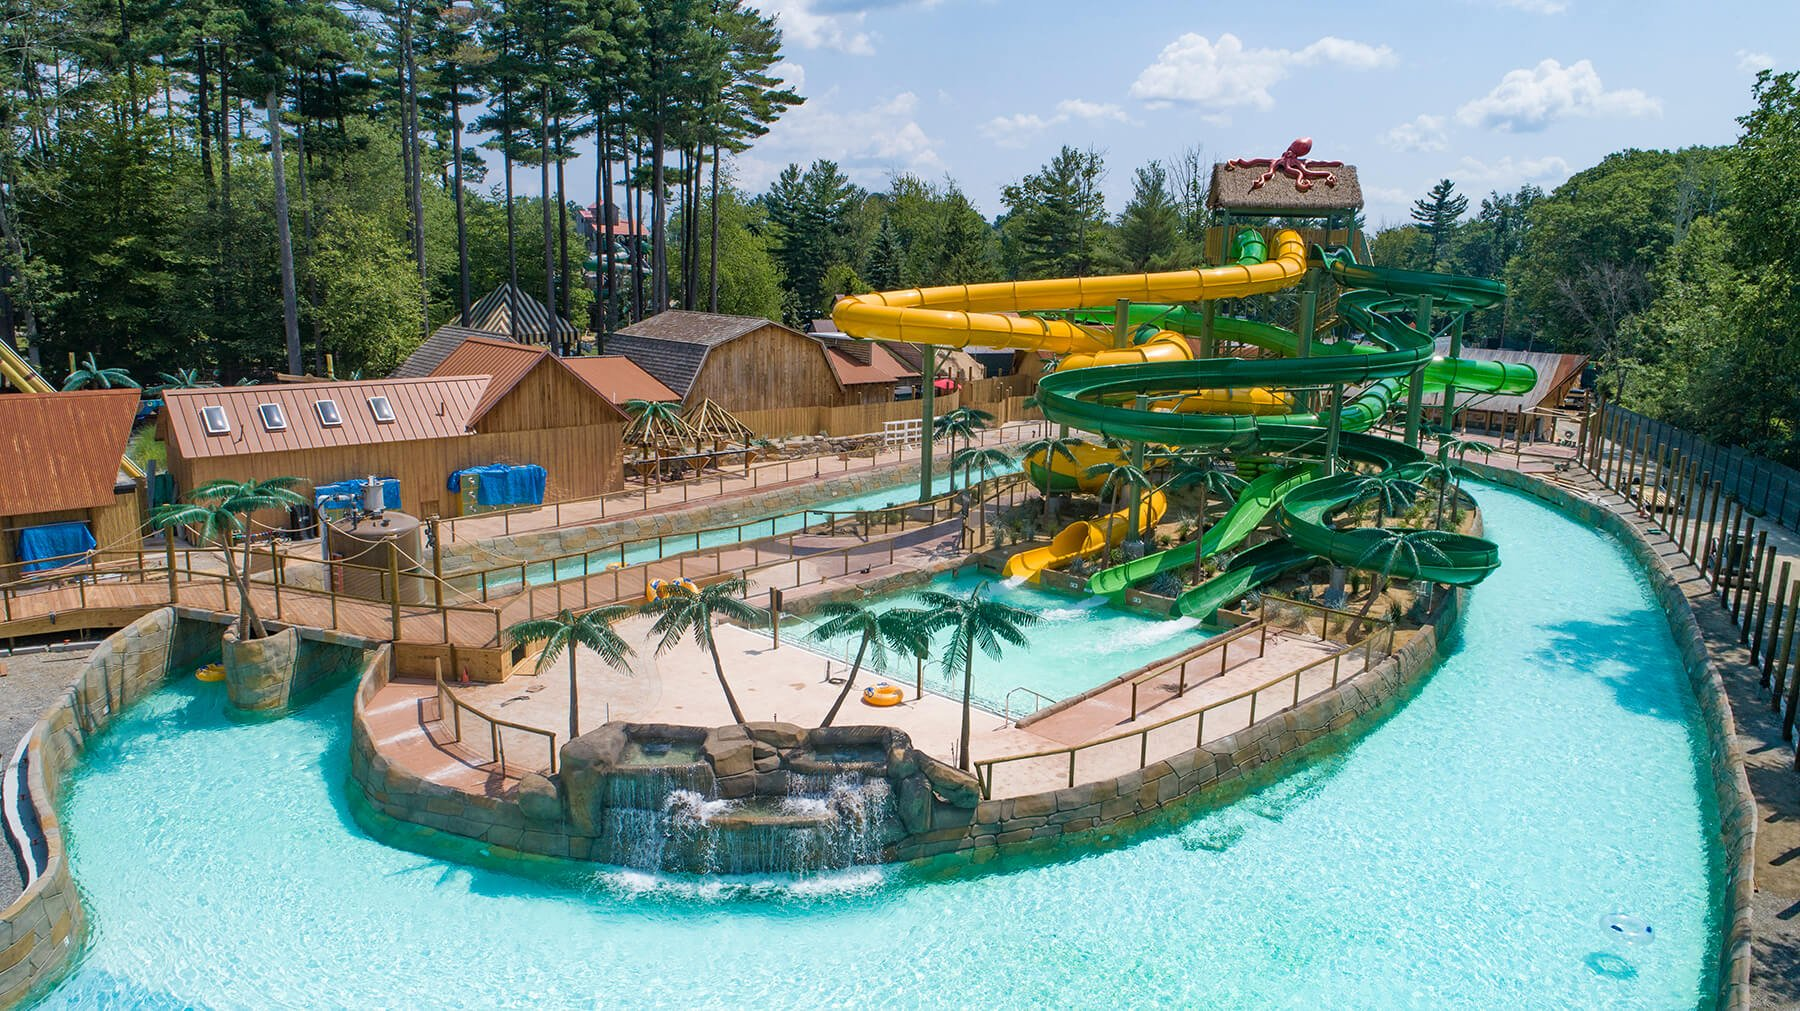 canobie lake park was chosen by times money magazine as one of the top 10 amusement parks in america they loved the untamed and boston tea party rides and